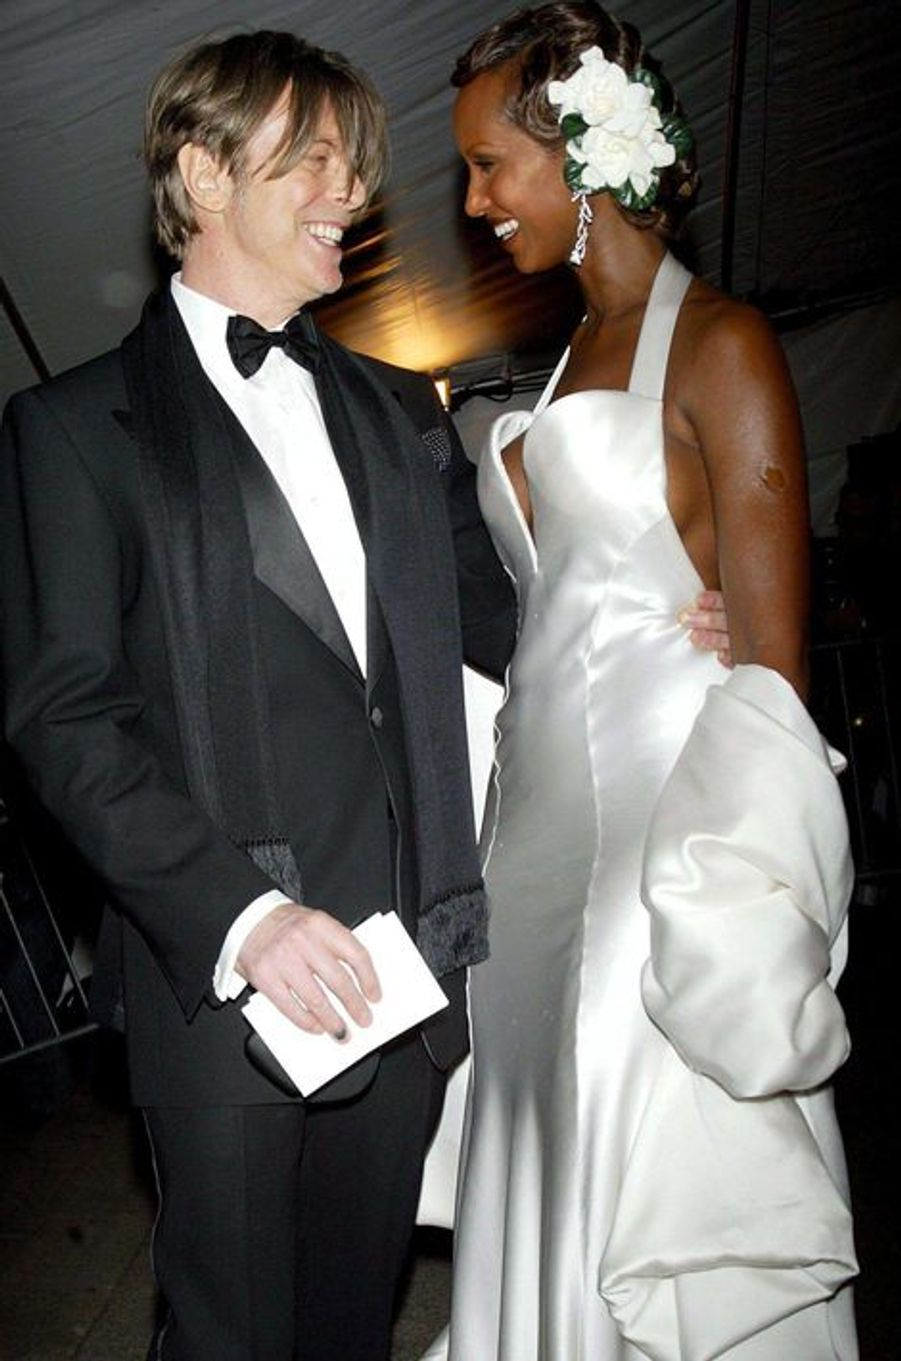 David Bowie et Iman, en avril 2003